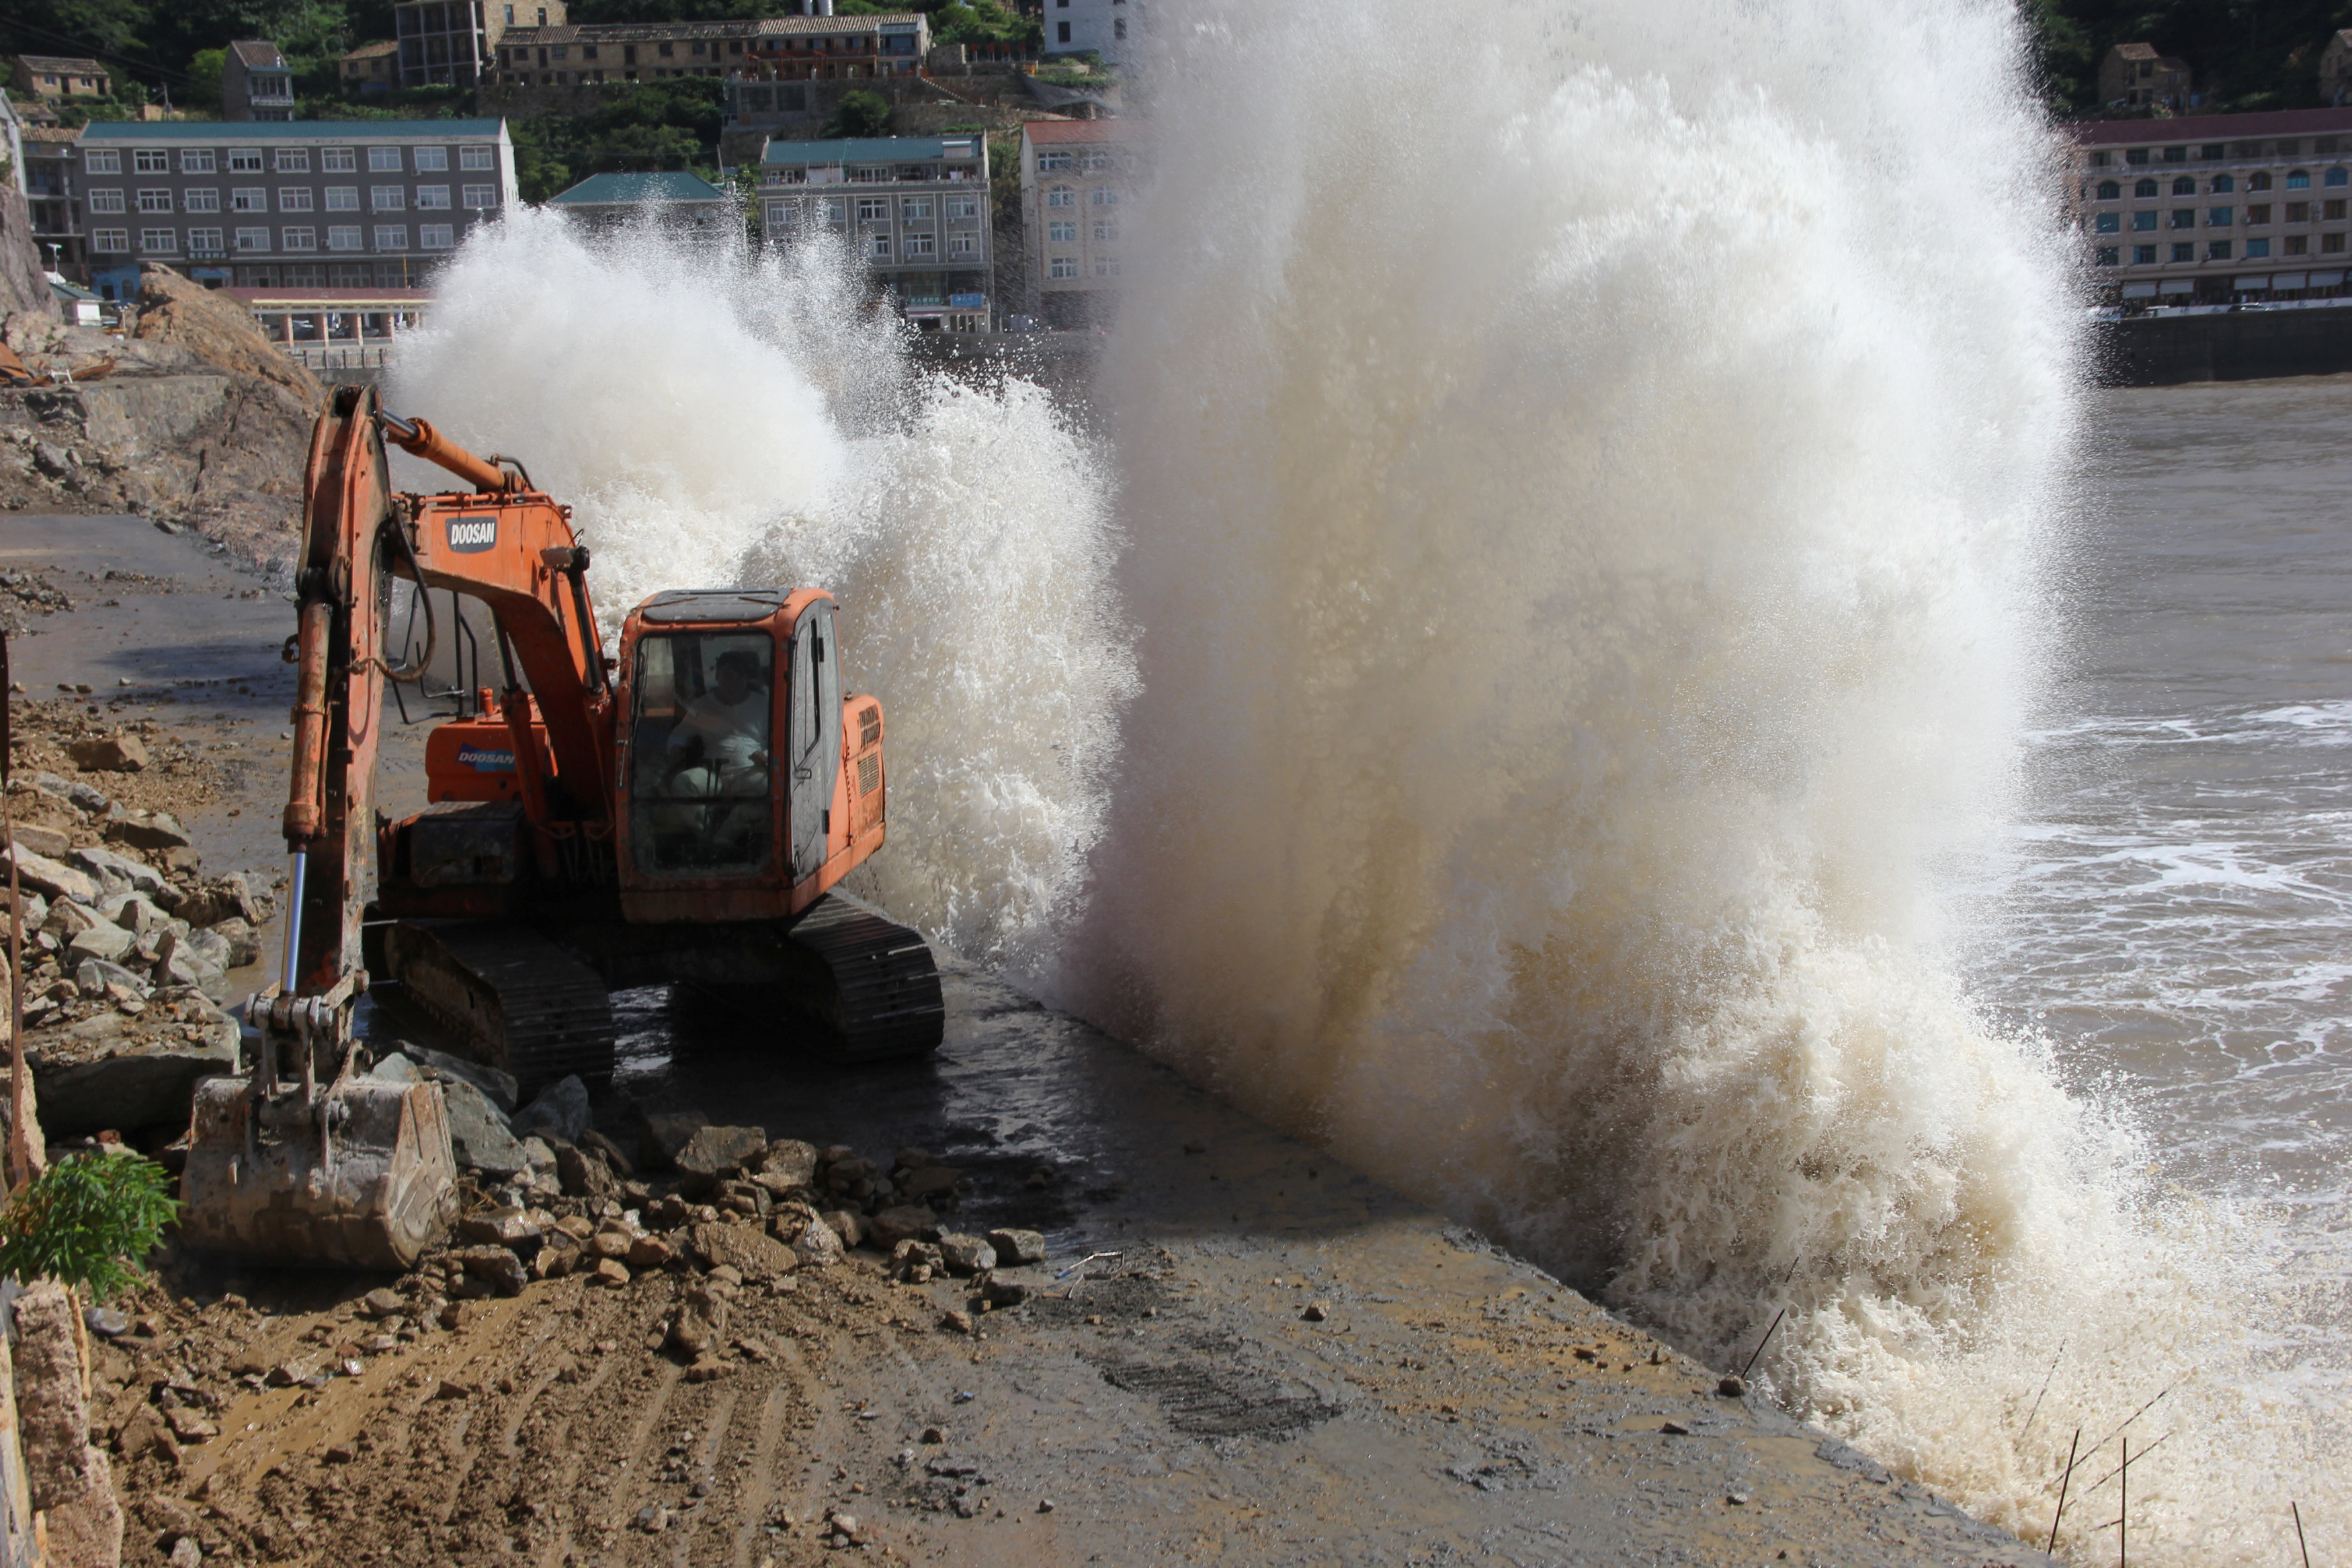 A wave breaks on the waterfront next to an excavator, as super typhoon Maria approaches, in Taizhou, Zhejiang province, China, July 10, 2018. REUTERS/Stringer